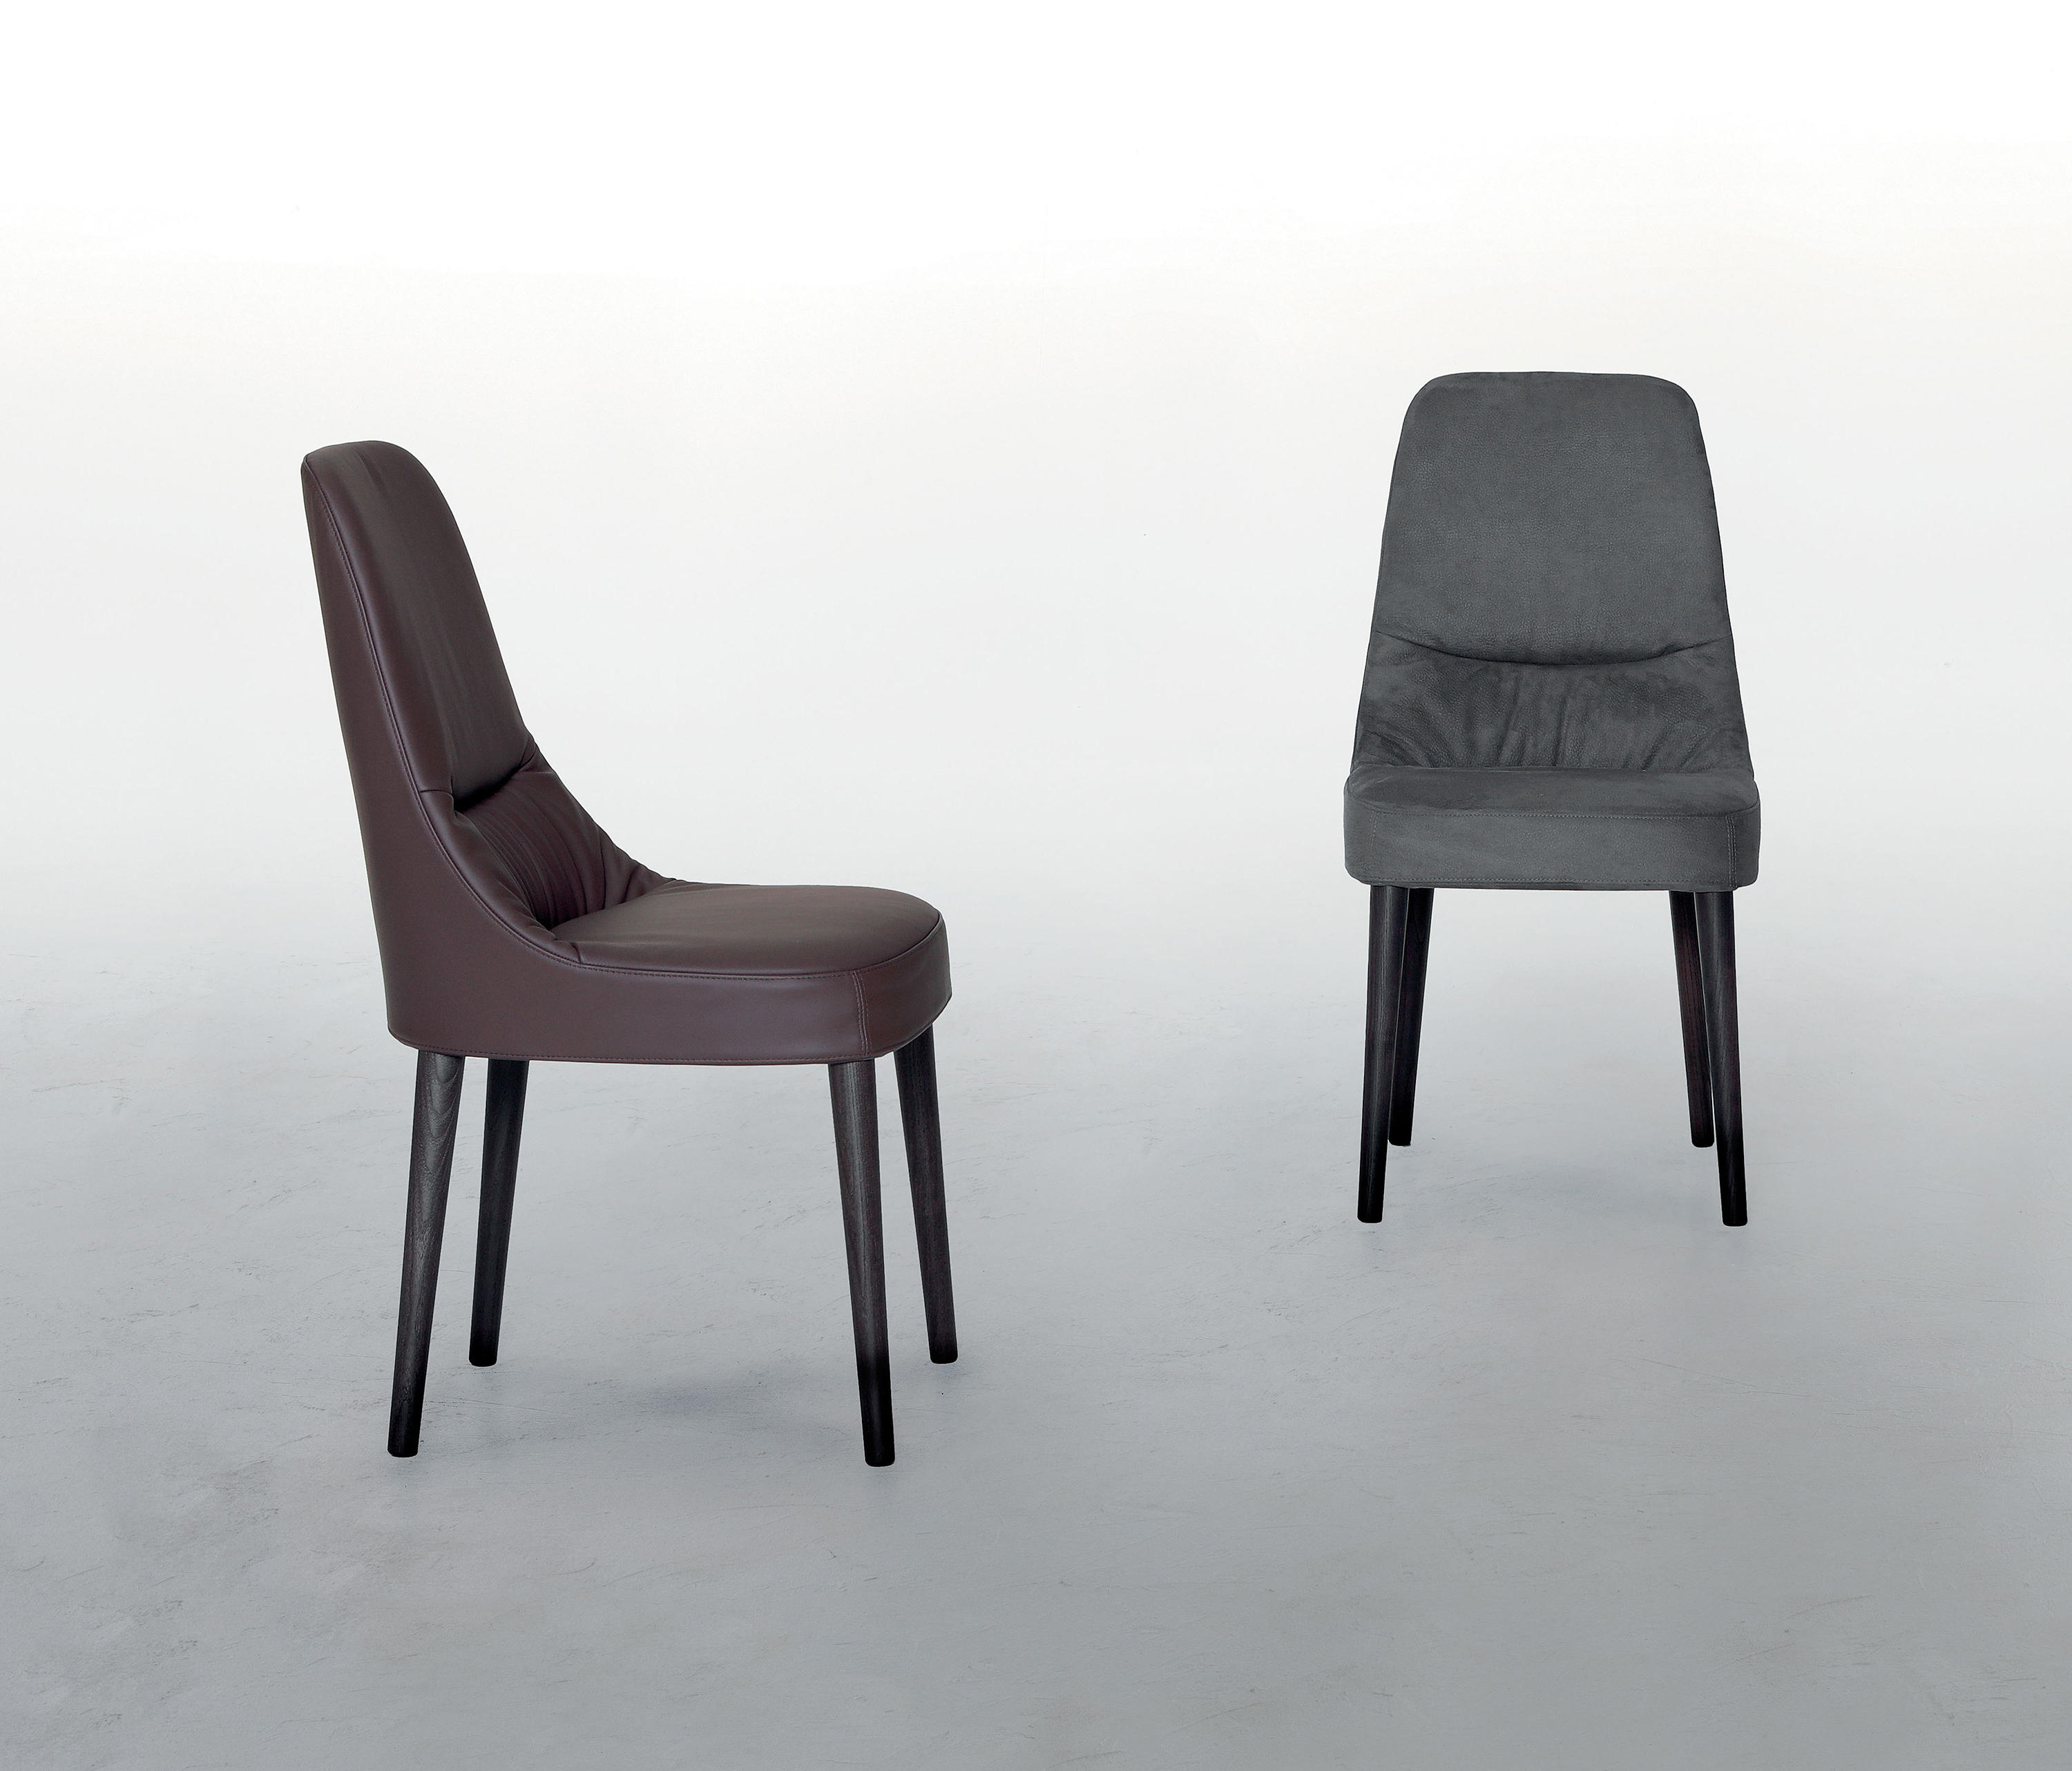 JULIETTE - Chairs from Tonin Casa | Architonic